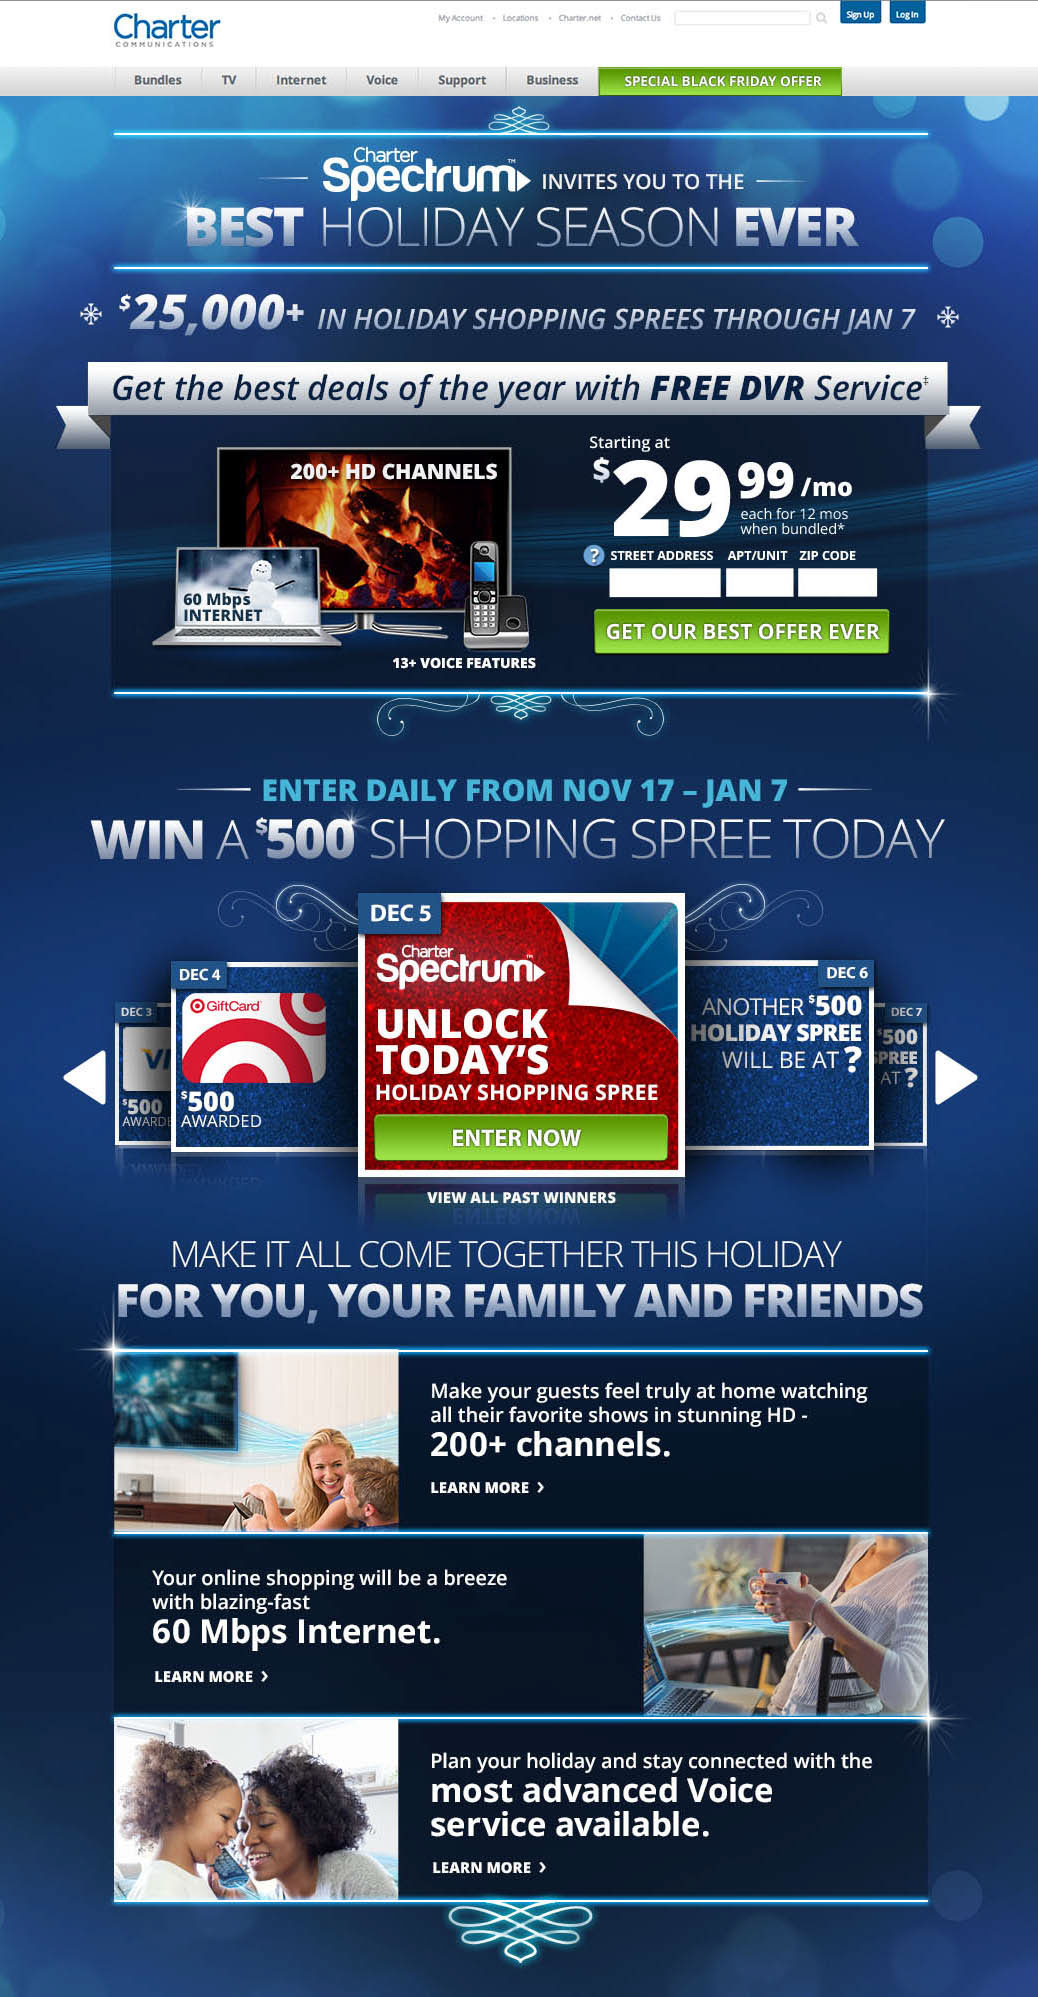 CHARTER SPECTRUM - Cross Channel Holiday Campaign on Behance